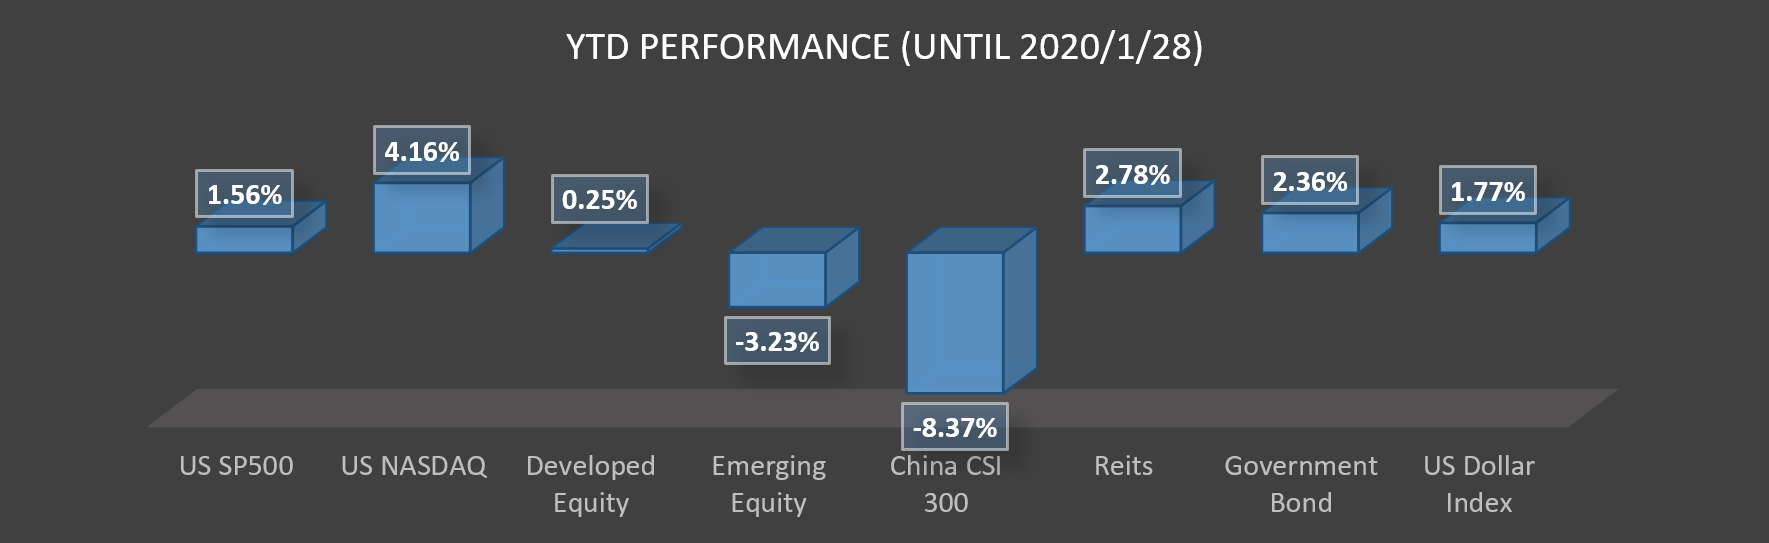 Performance as of 28 Jan 2020